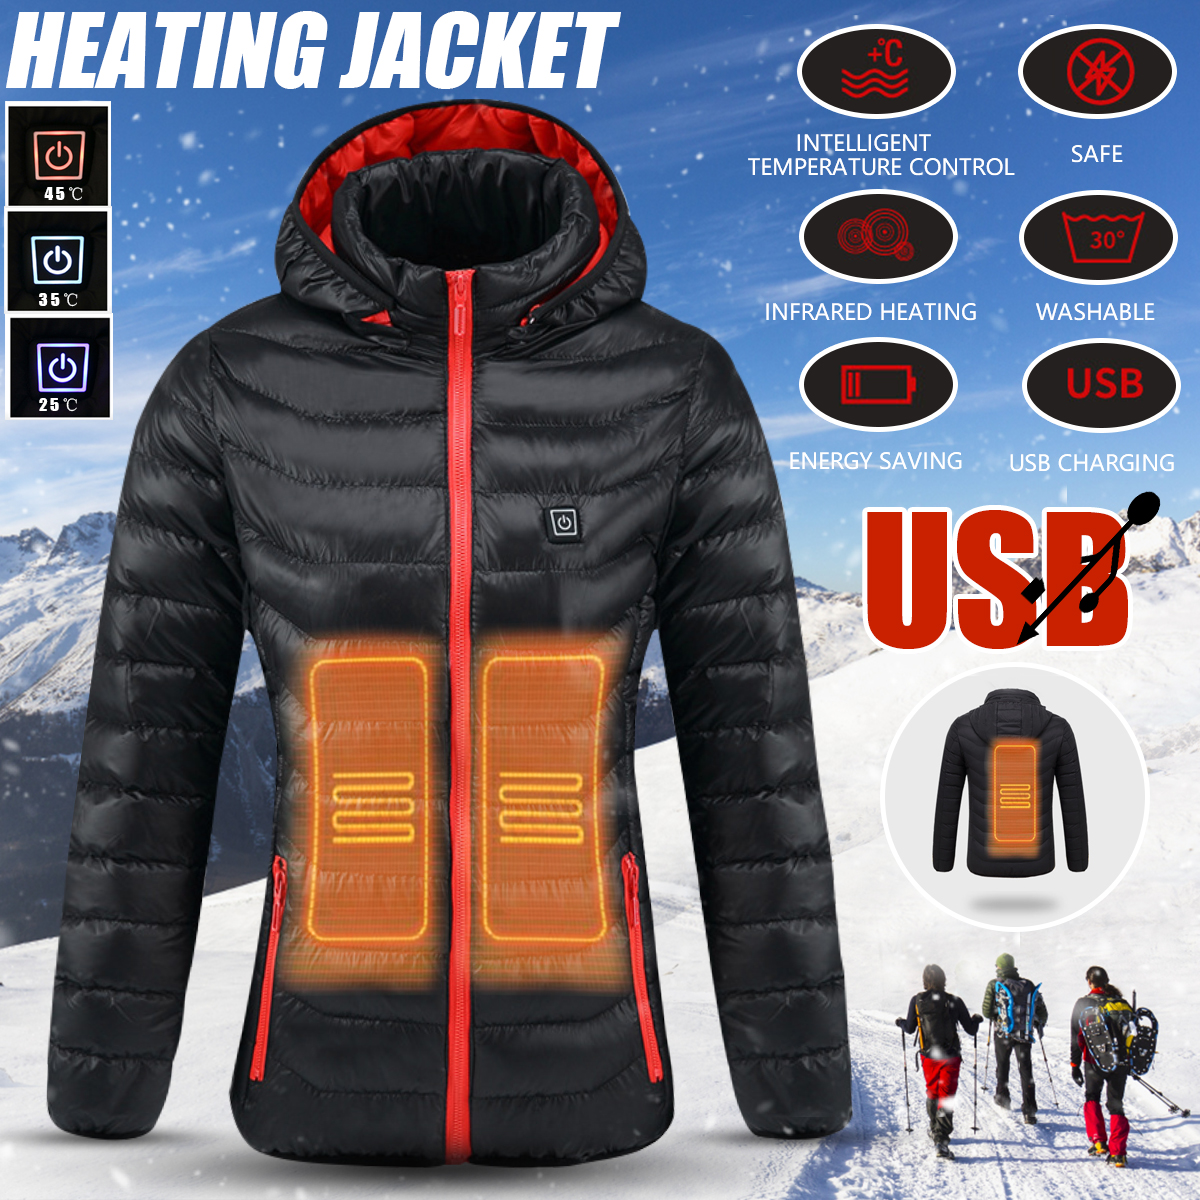 Women Winter USB Heating Jacket Heated Safety Jacket Hooded Work Coats Adjustable Temperature Control Safety Clothing S/M/L/XL sq9 mini sport motion dv camera hd 1080p car dvr dash cam voice video recorder digital camcorder black infrared night vision cam